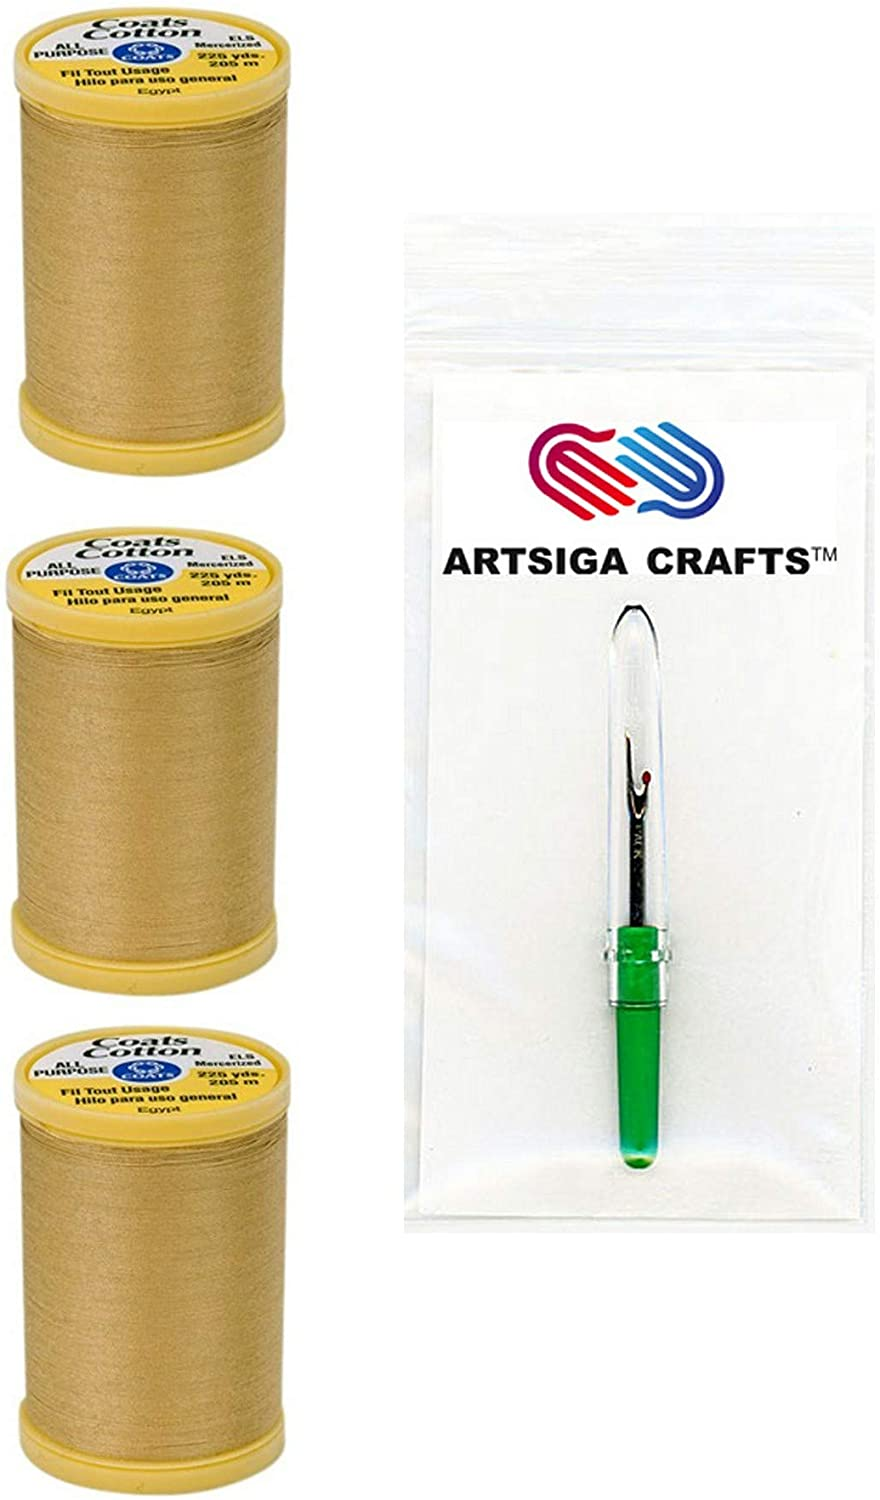 Coats & Clark Sewing Thread General Purpose Pure Egyptian Cotton Thread 225 Yards (3-Pack) Temple Gold Bundle with 1 Artsiga Crafts Seam Ripper S970-7450-3P